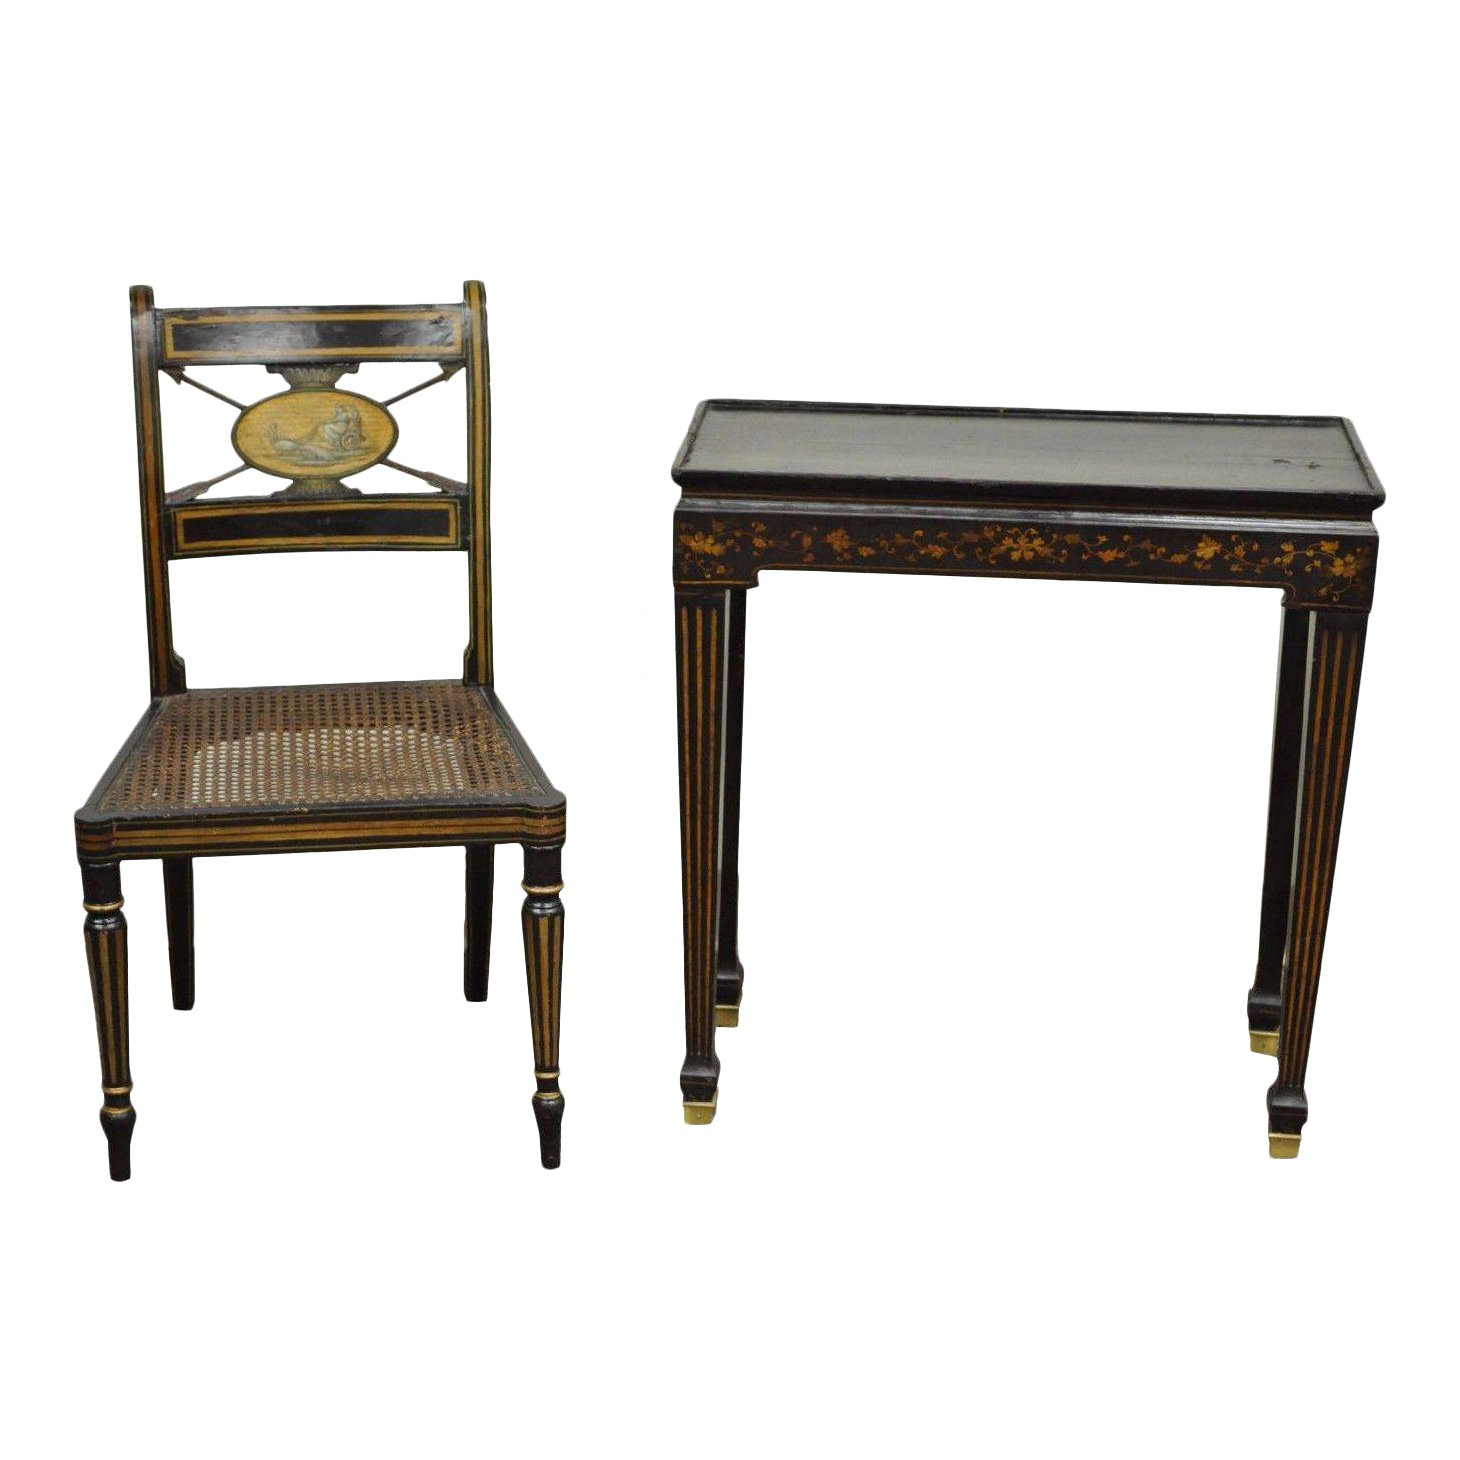 antique neoclassical black lacquered desk telephone table stand and accent chair chairish pink crystal lamp back patio furniture diy sliding door hardware pottery barn bar wood